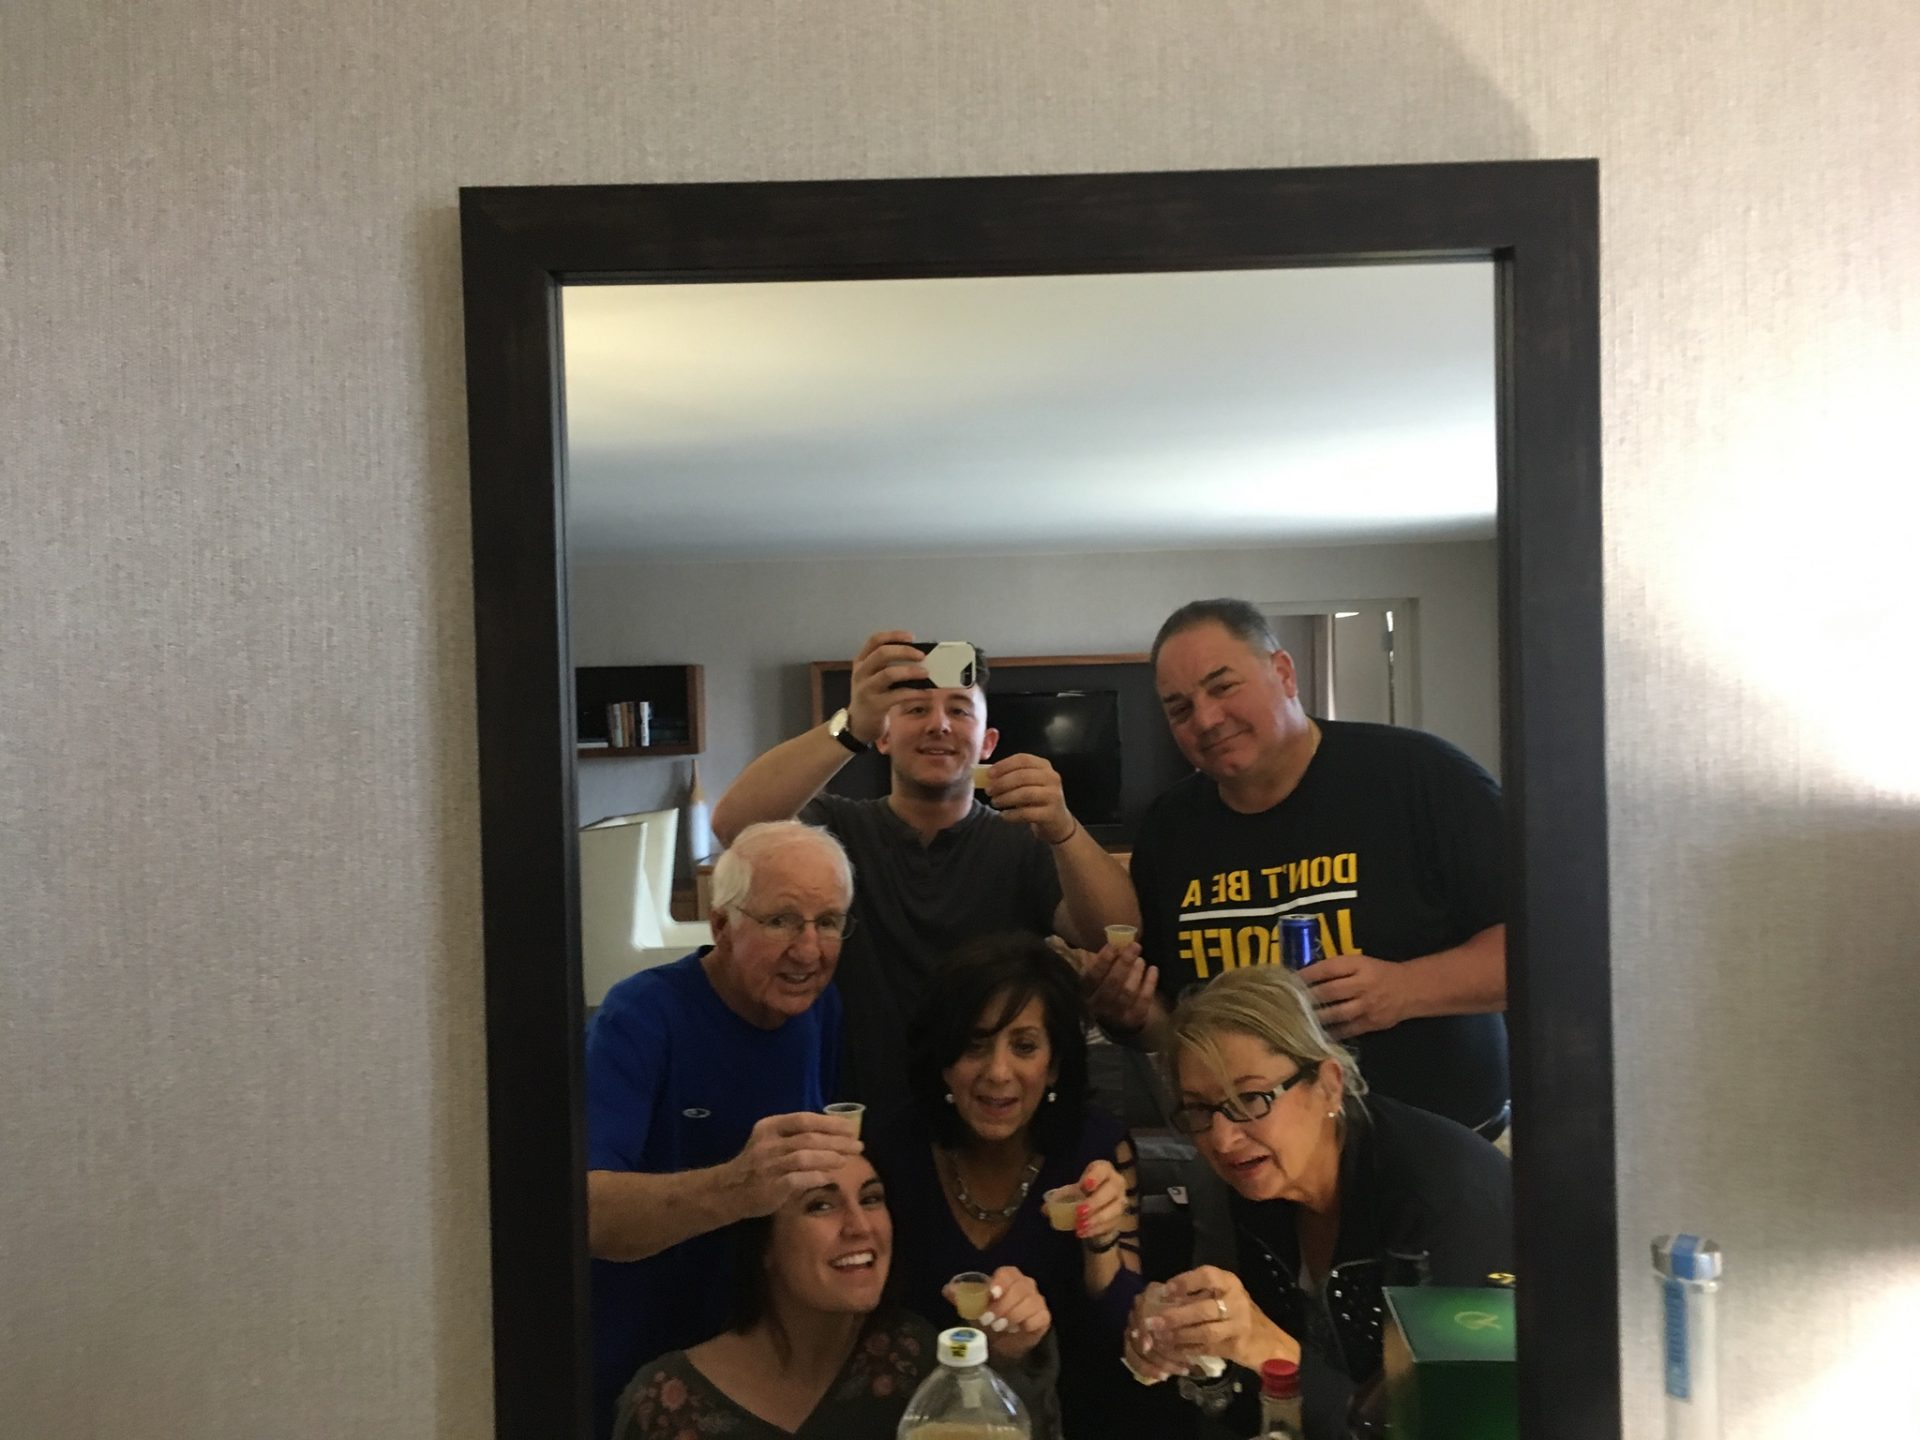 Getting ready for Nicole and Matt's wedding. Always a good time with uncle Donnie.   Him and aunt Shirley were so much help. Not sure what I would have done without them.  Love you both so much. I/we will miss you uncle Donnie.  With more love than you knew. Patty and Nick D